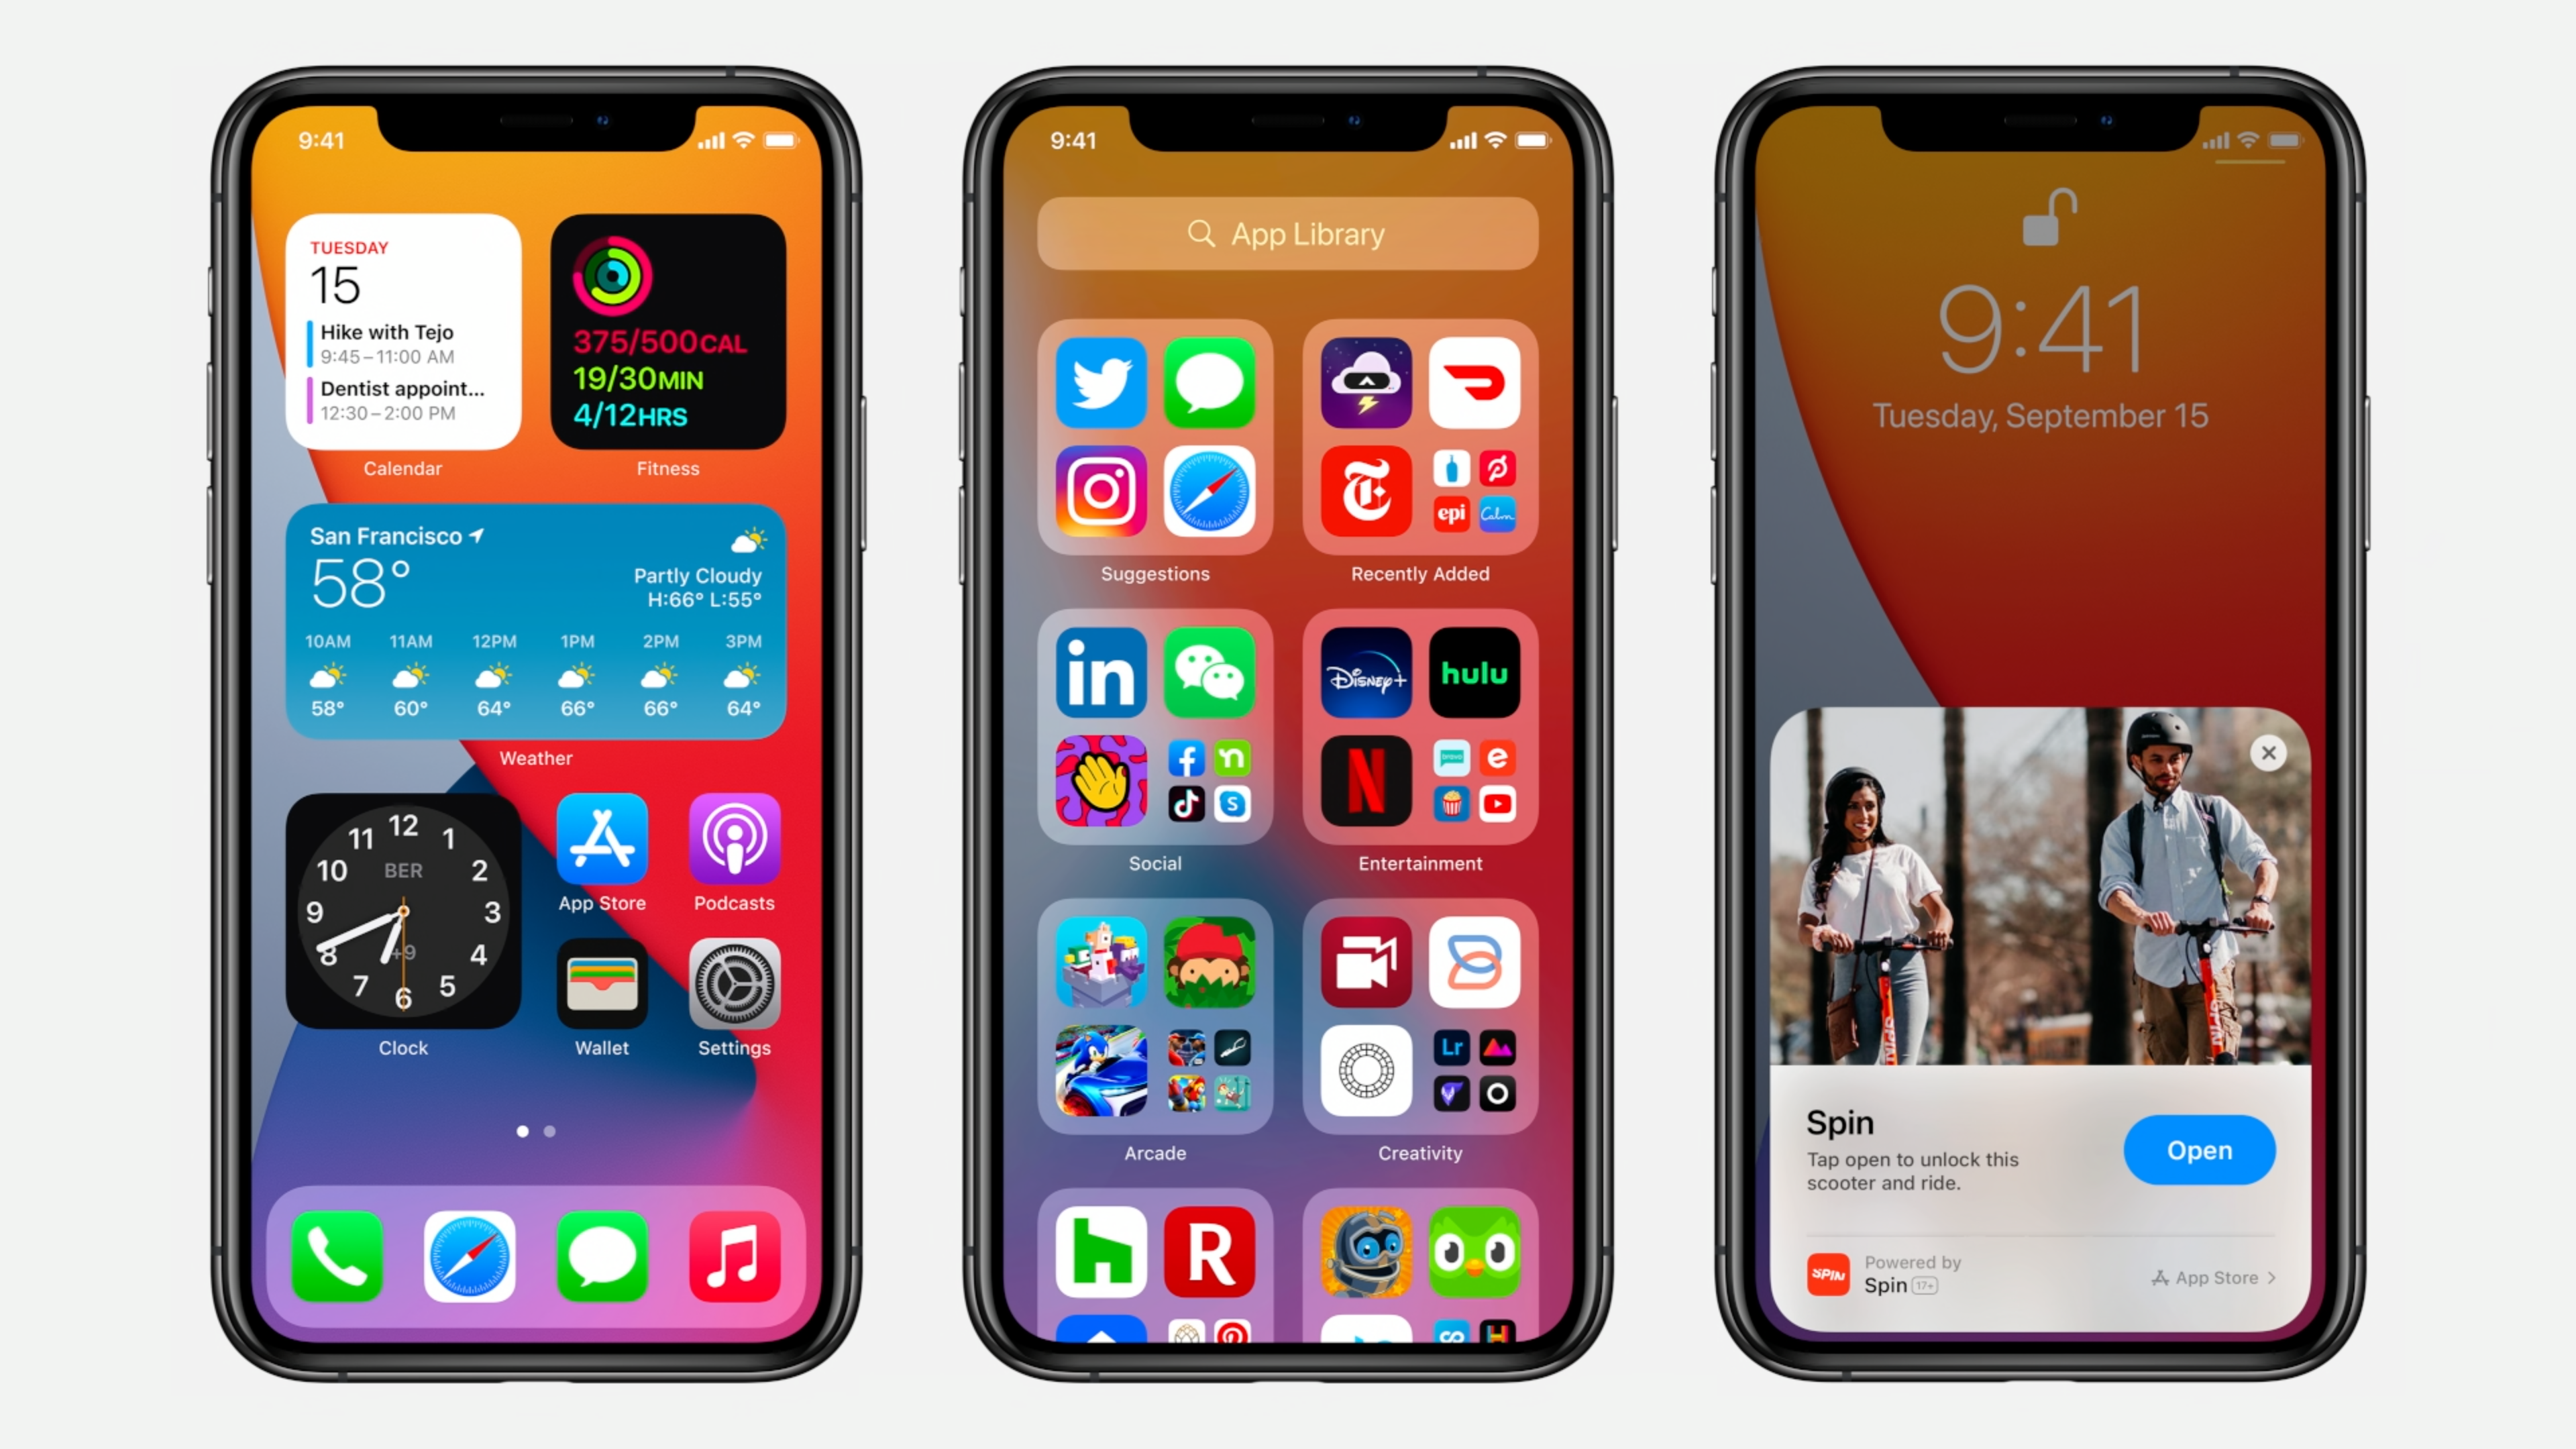 258-apple-event-9-15-2020-apple-ios.png